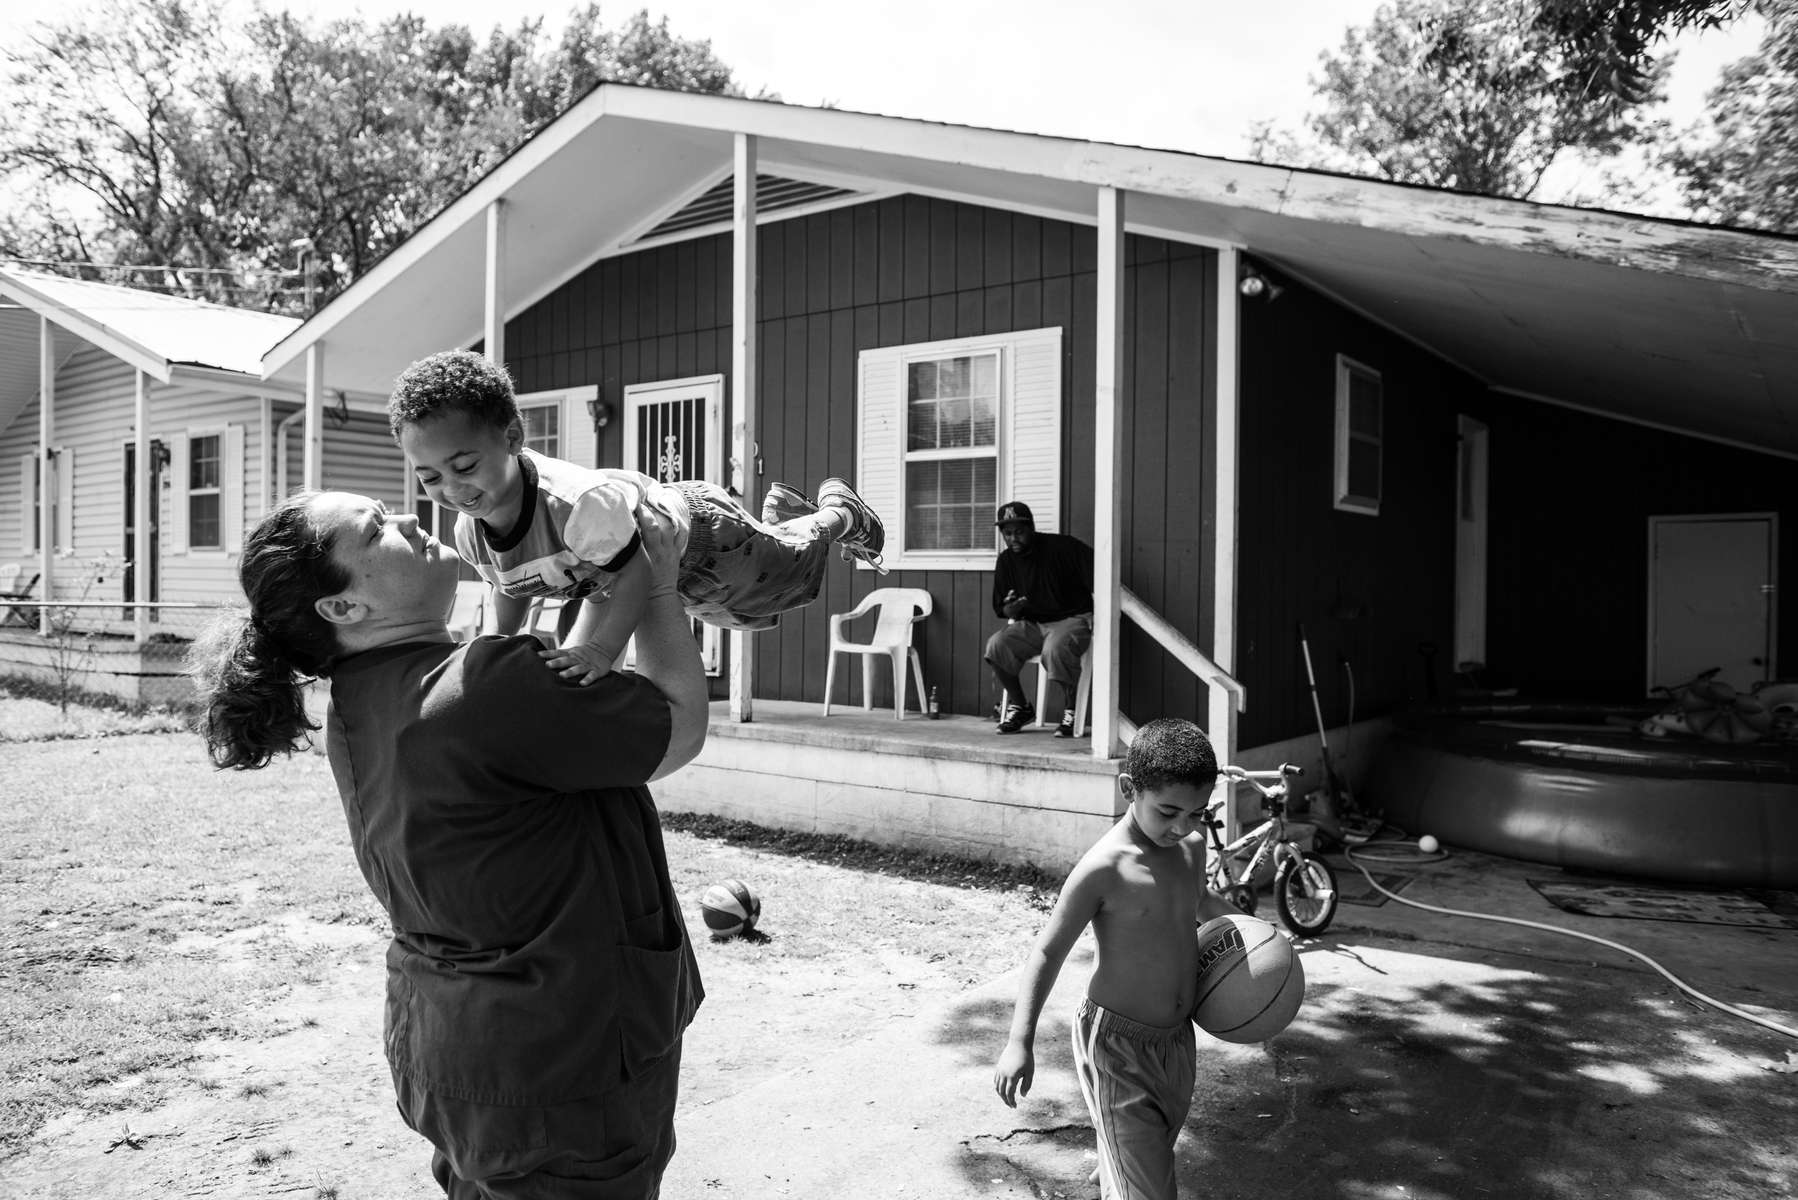 Jessica McGowan with sons Keylan, age 2, and Jacob, age 5, in front of the house she currently shares with her mother. Jessica is moving to another house in a subsidized housing project, to move back in with her children's father (pictured on the porch.)